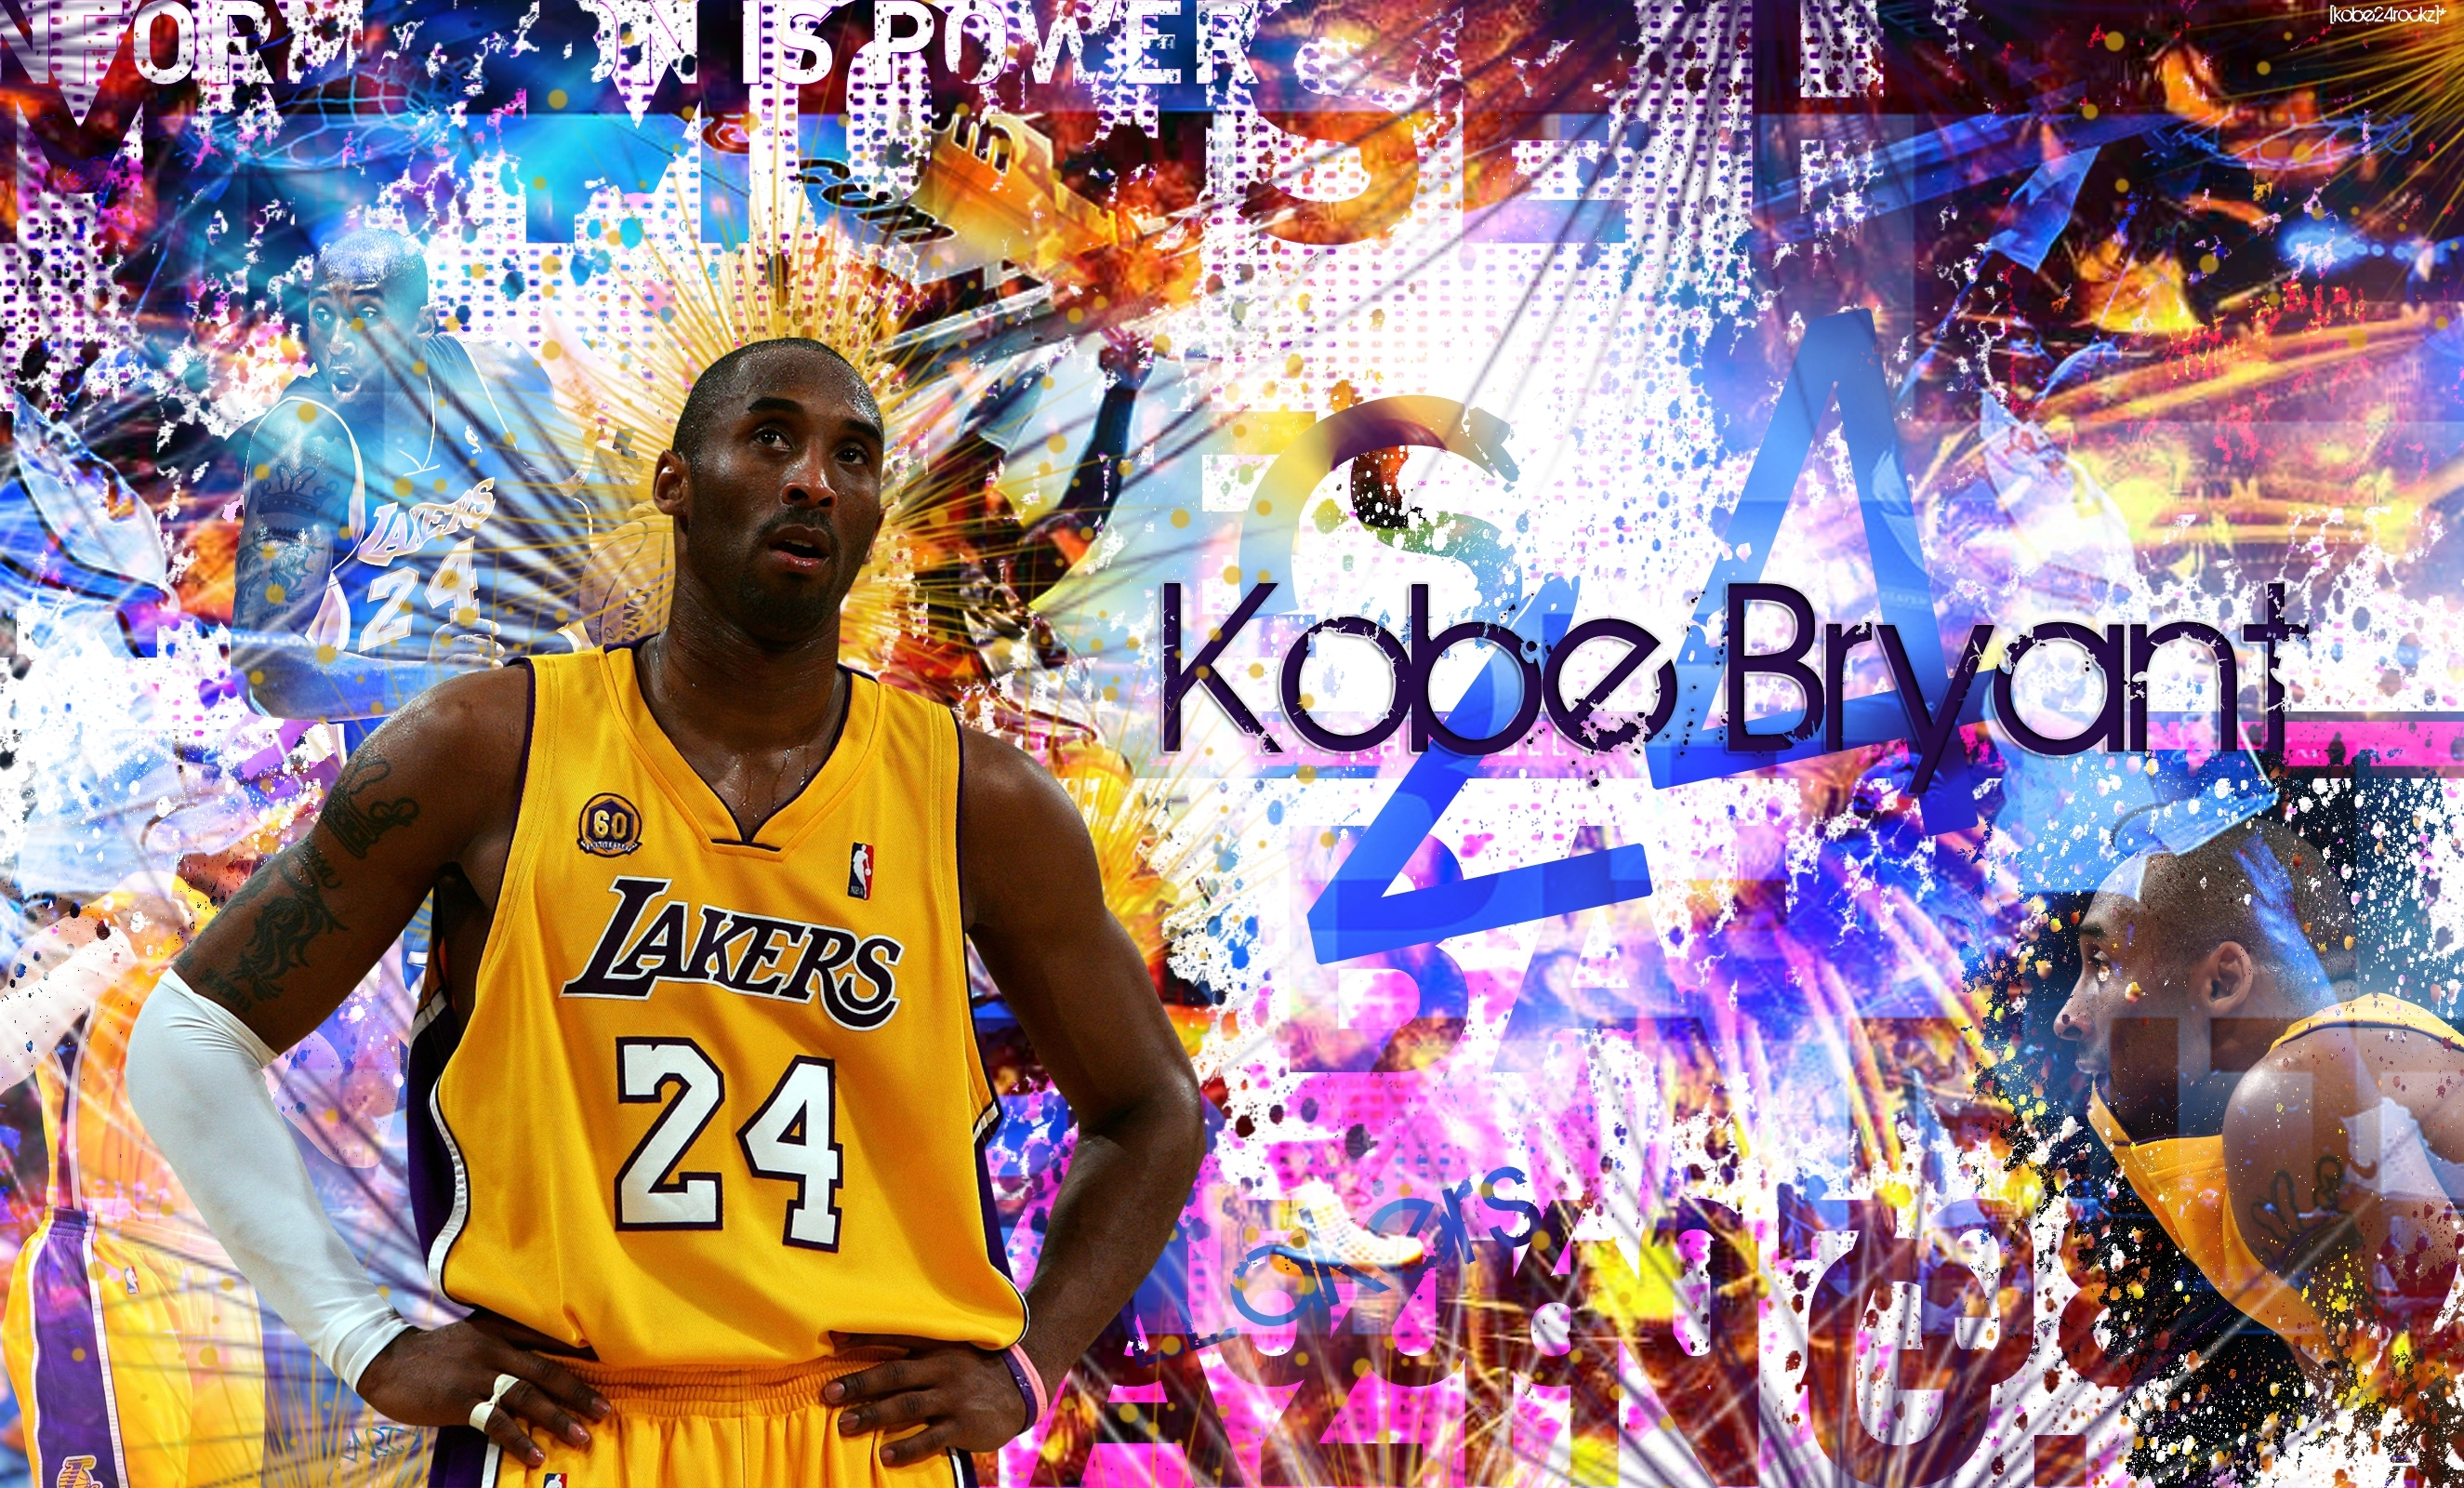 kobe-bryant-wallpapers-download - wallpaper.wiki